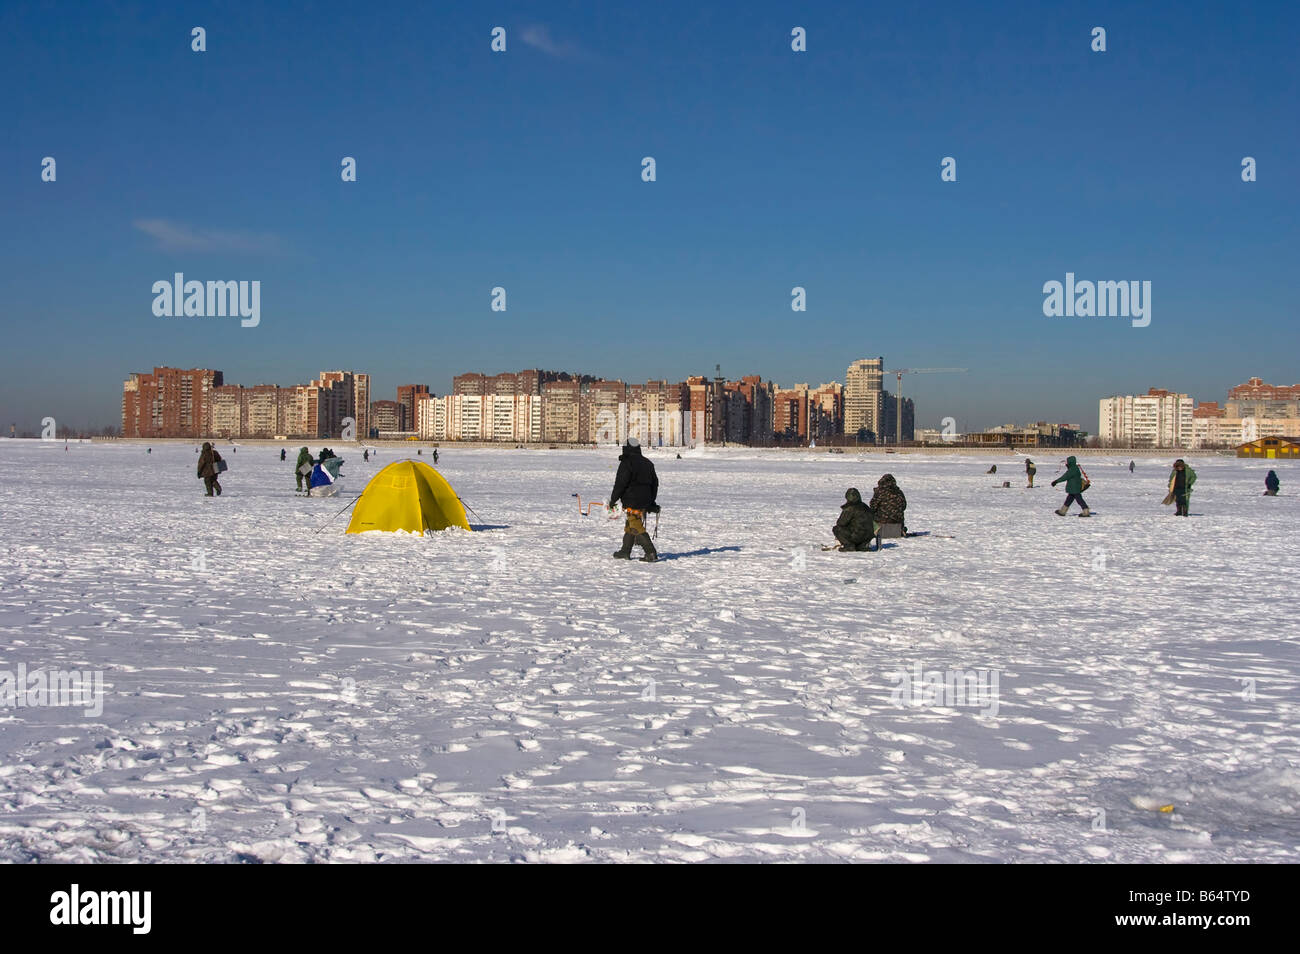 Fishers on ice of Gulf of Finland in sunny February day, St. Petersburg - Stock Image